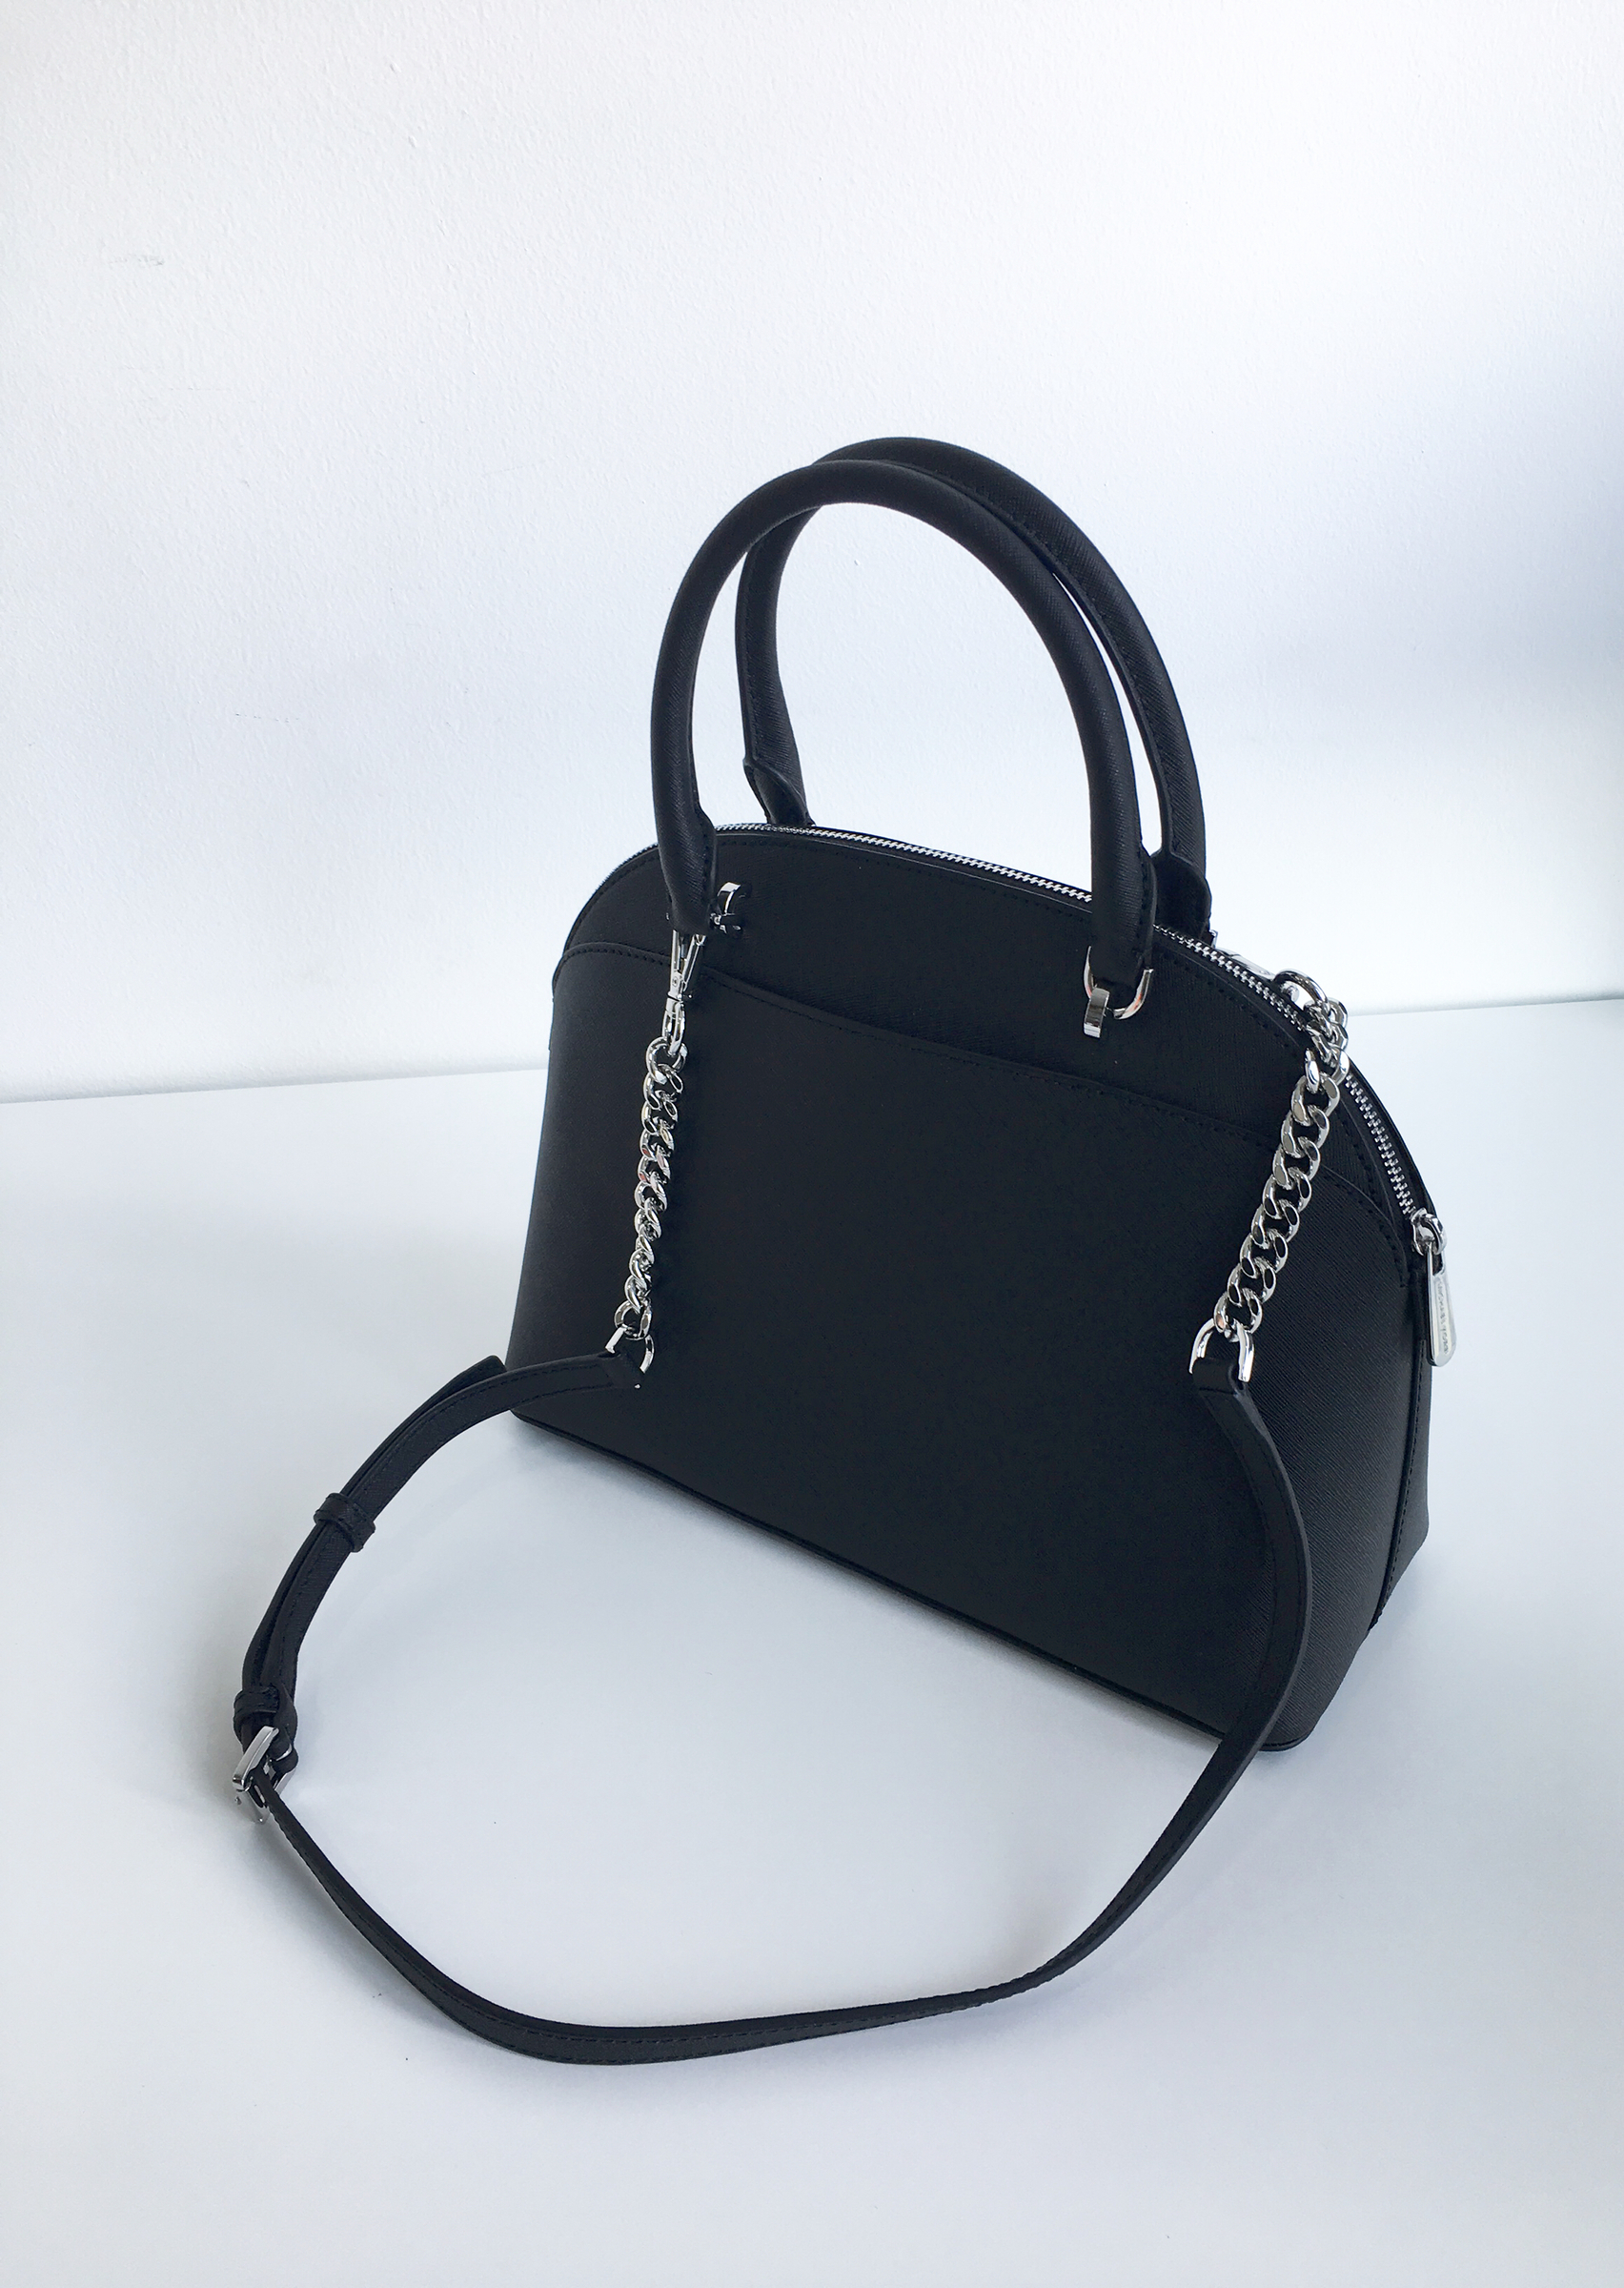 01a53c49d277 MIchael Kors Emmy Large Dome Satchel In Leather Black – Tifanc Malaysia